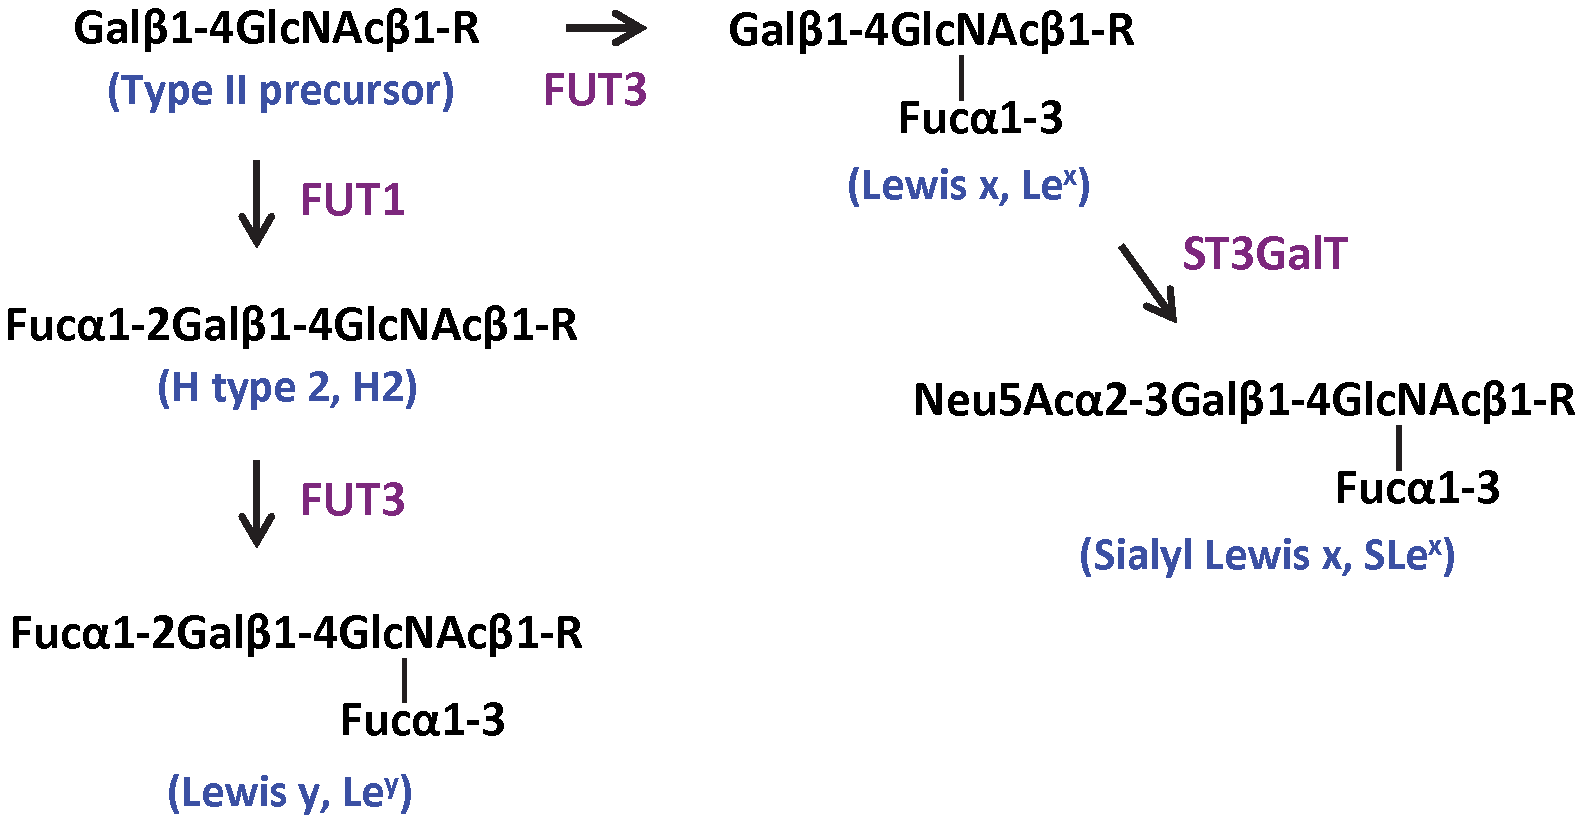 Biosynthesis pathways of Lewis y and sialyl Lewis x starting from the type II precursor (Galβ1–4GlcNAcβ1-R).